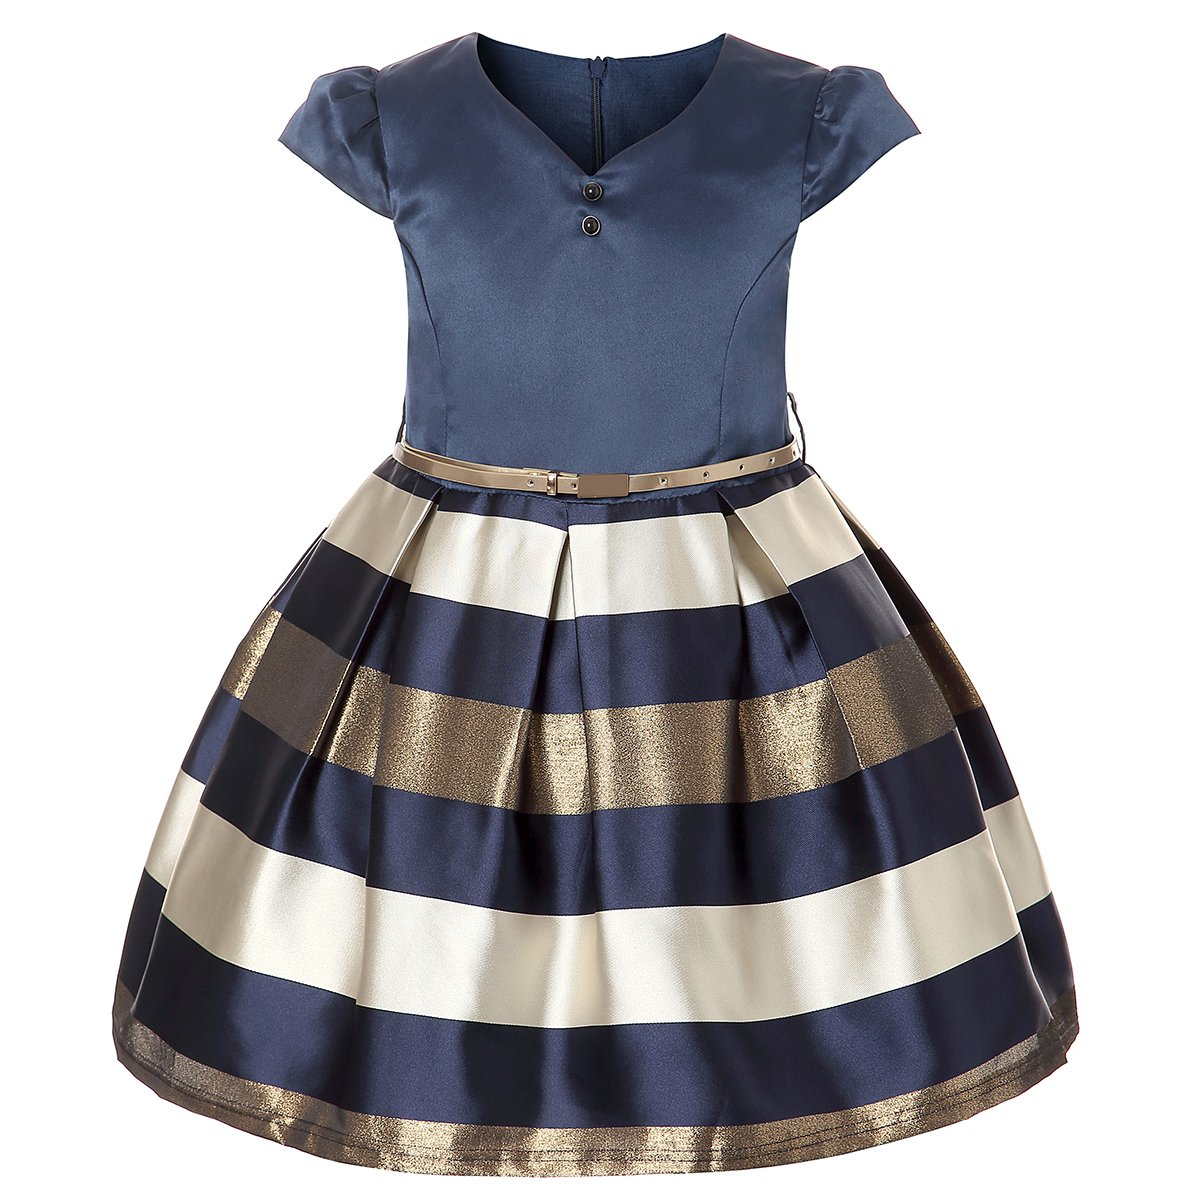 21c89b2d4cc0 MATERIAL: Cotton Polyester Lace Blending. Size Table means age ranges for  girl, but they are for general guidance only. For most accurate fit, we  recommend ...